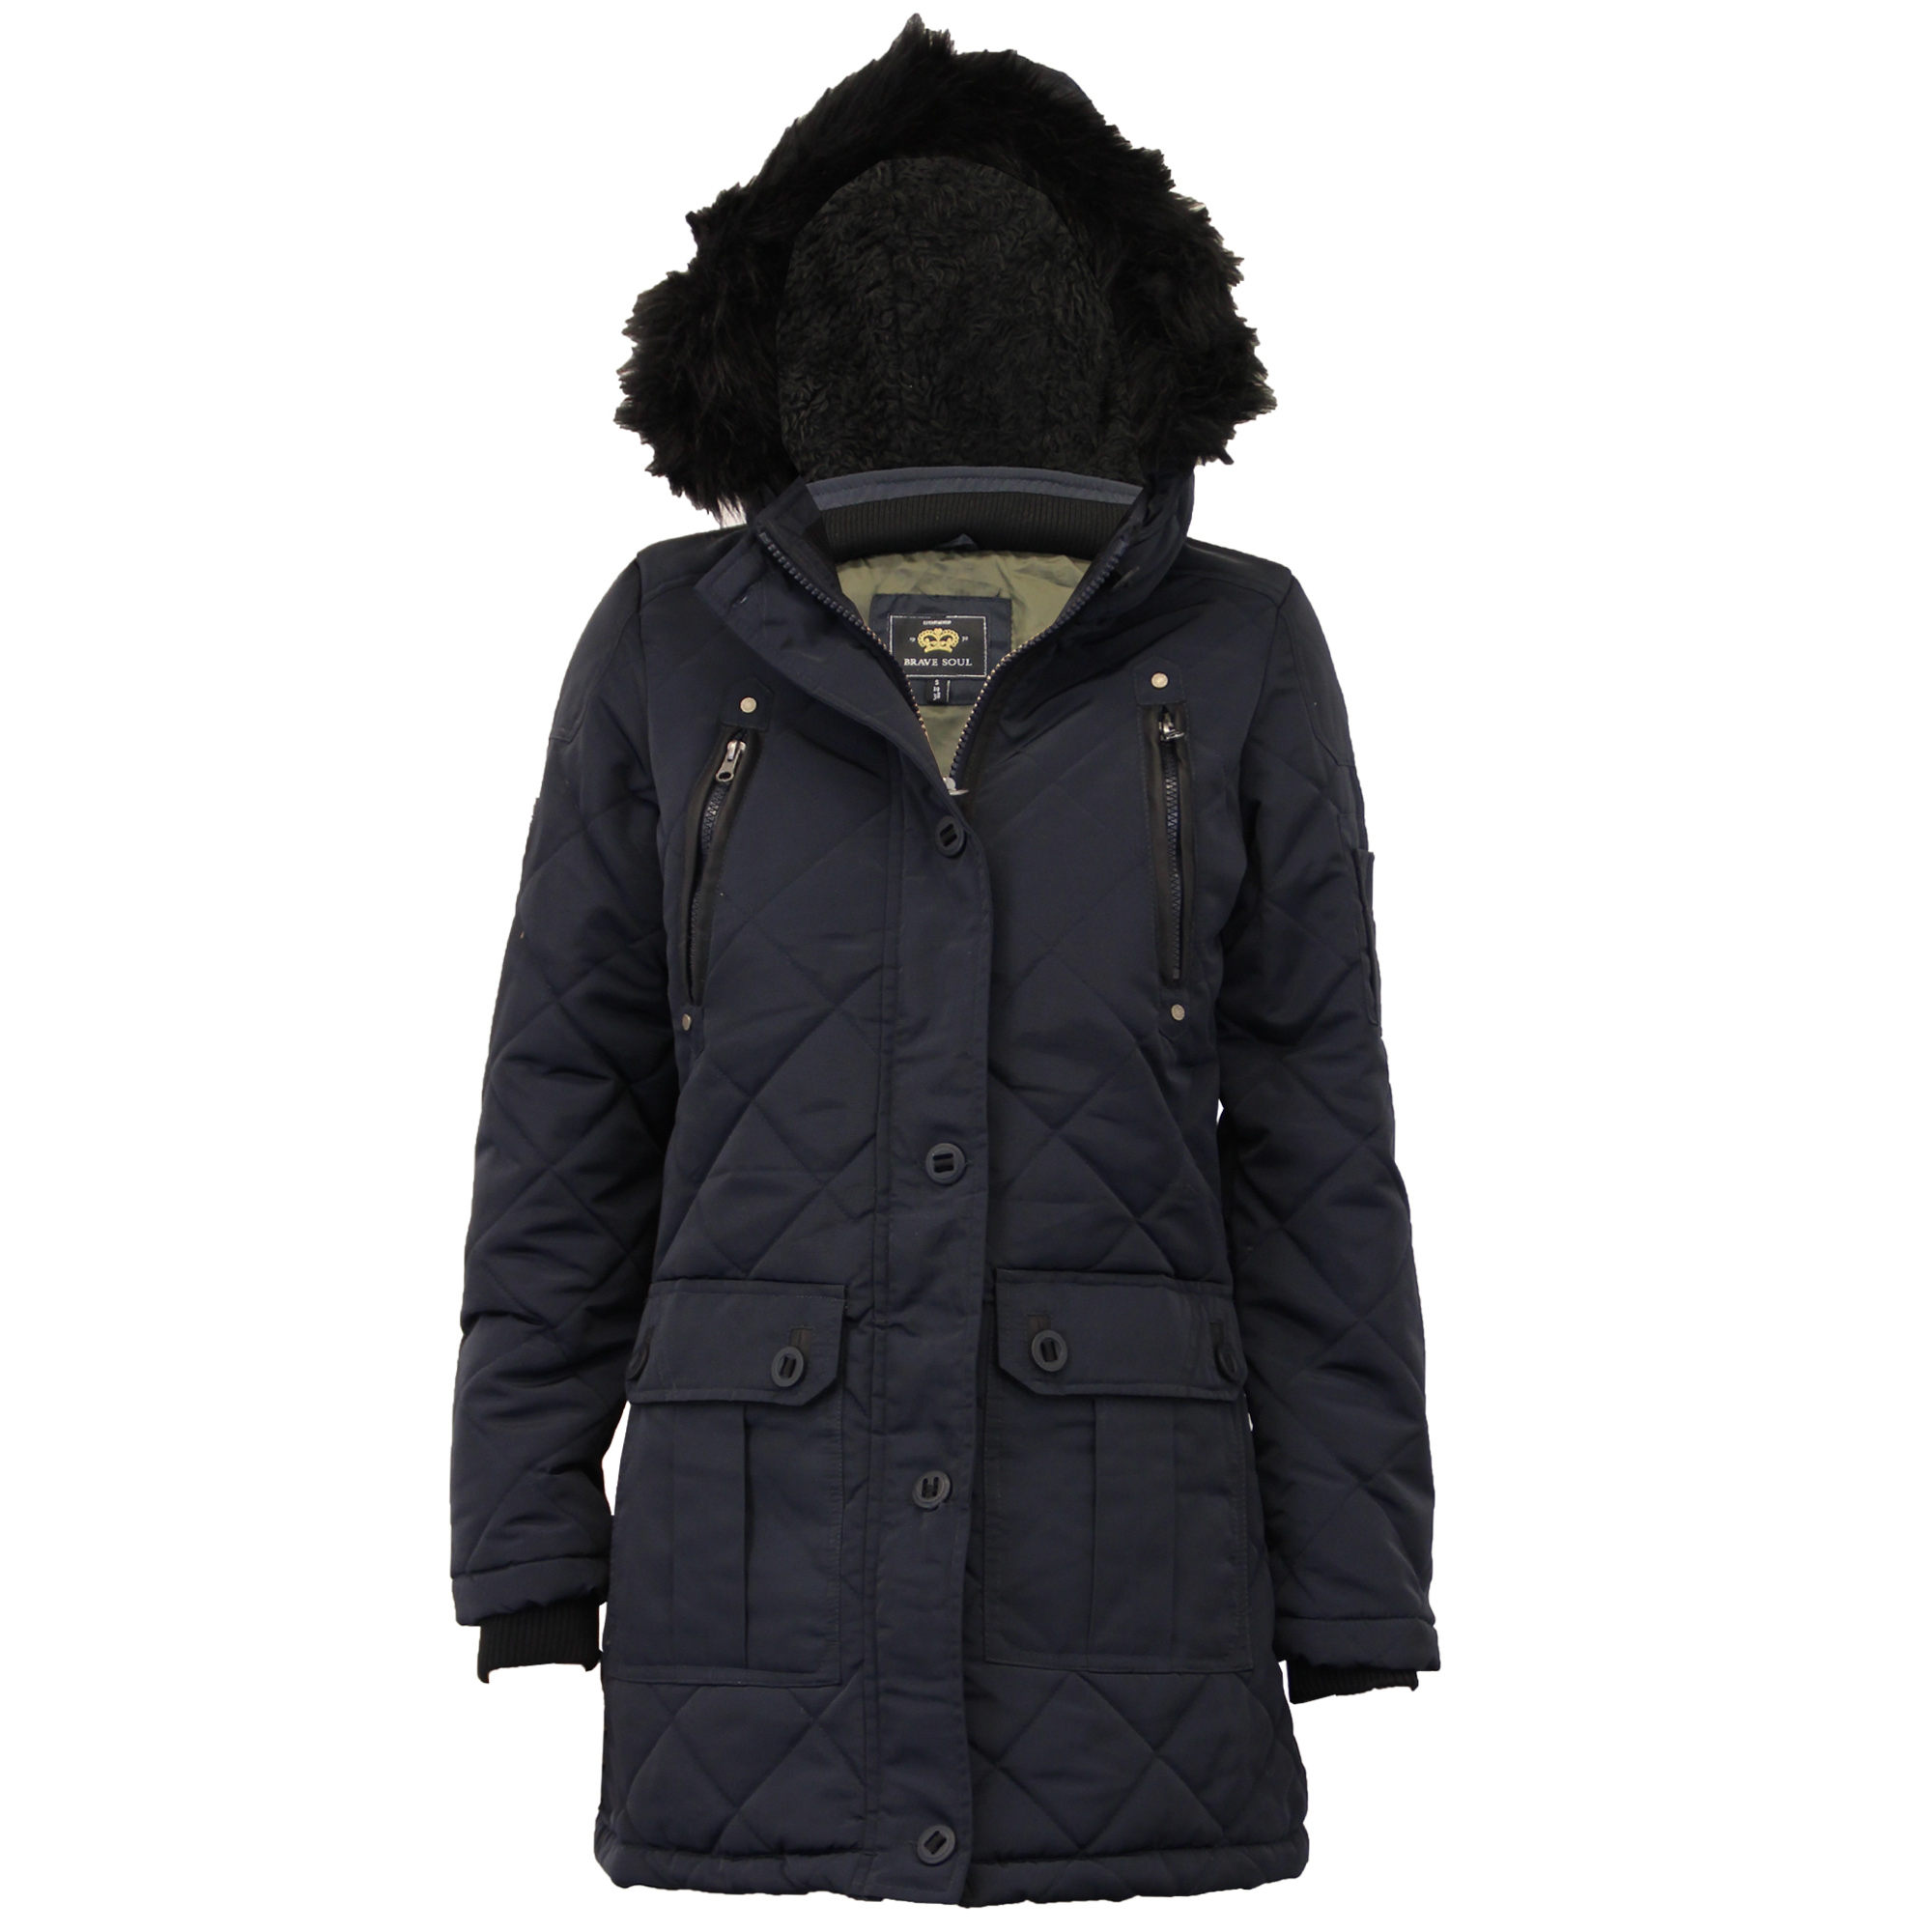 Ladies Parka Jacket Brave Soul Womens Coat Padded Hooded Quilted Faux Fur Winter